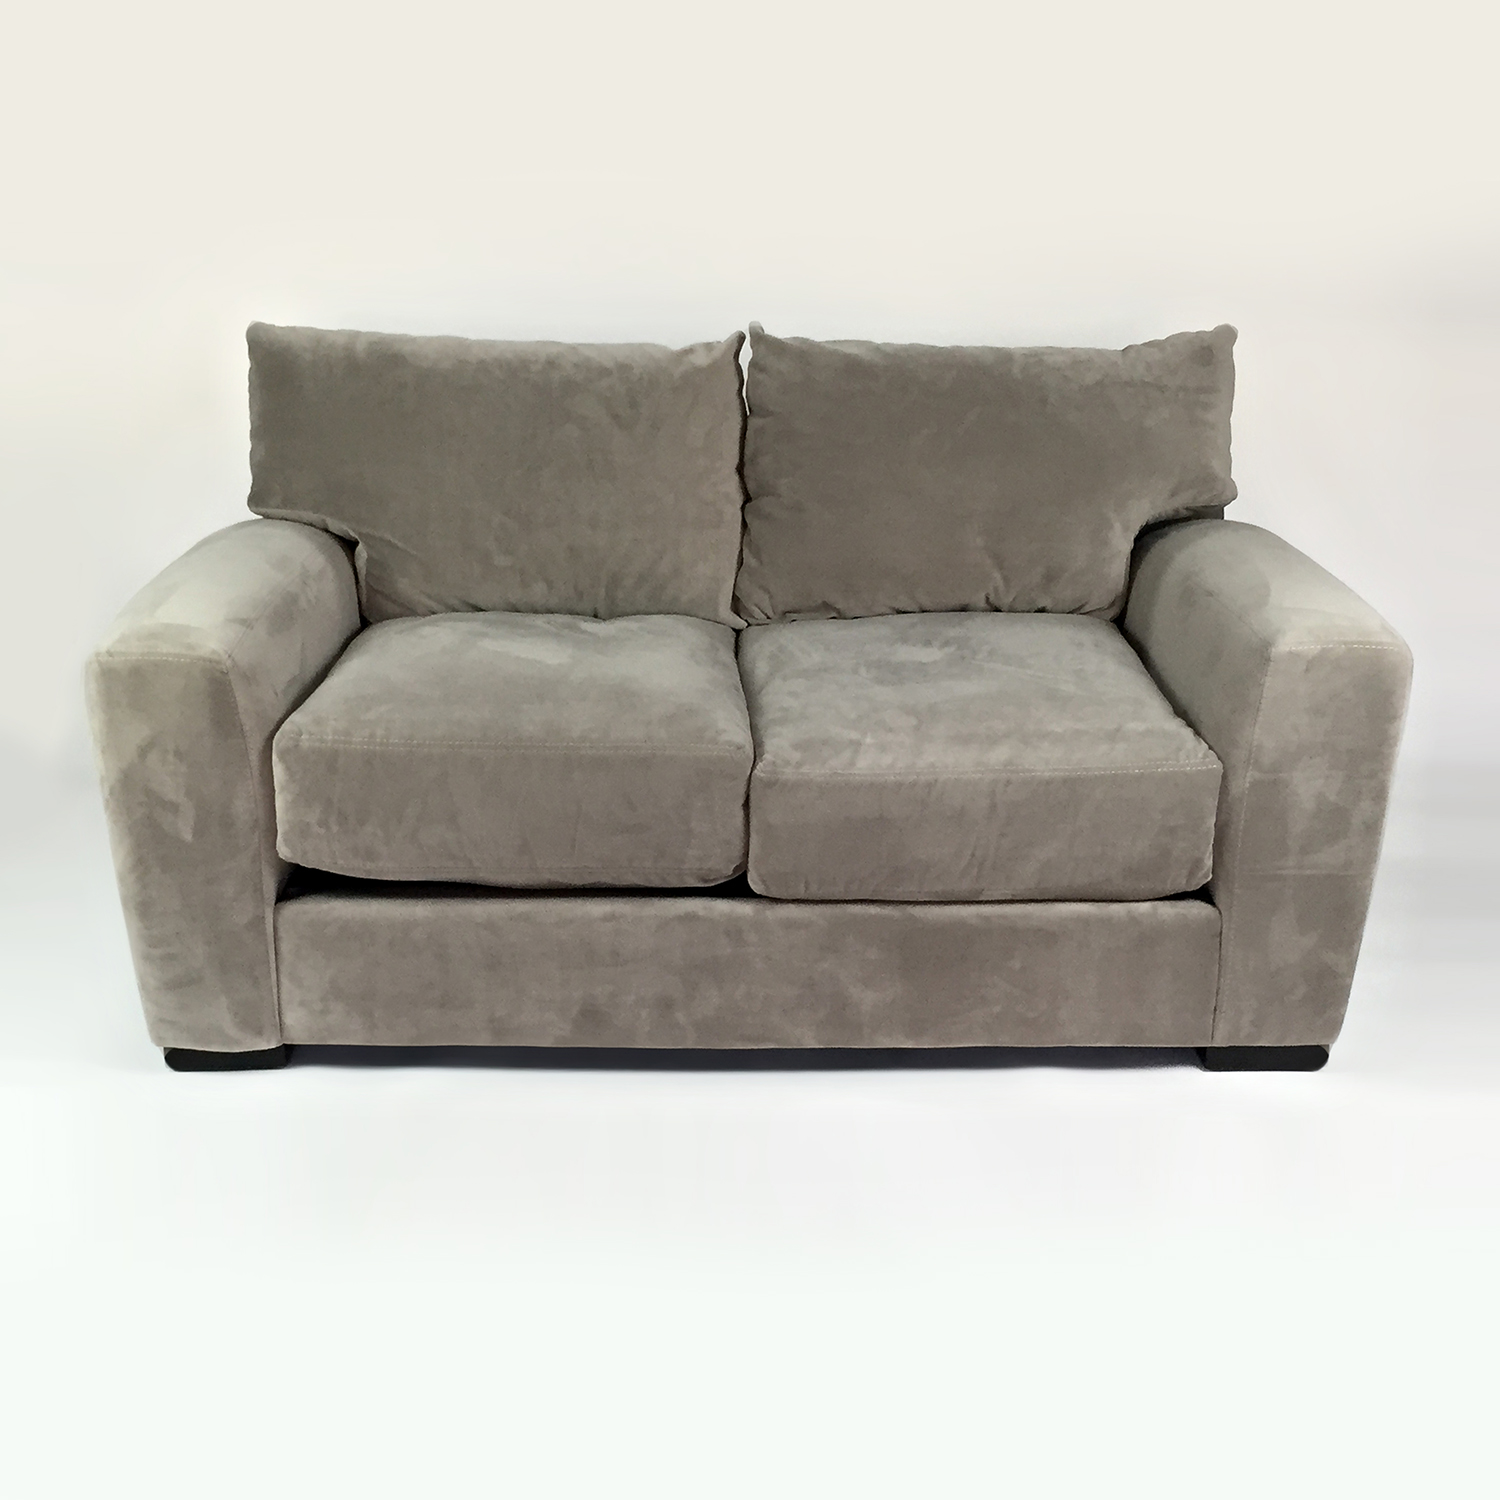 buy Raymour & Flanigan Microfiber Loveseat Raymour & Flanigan